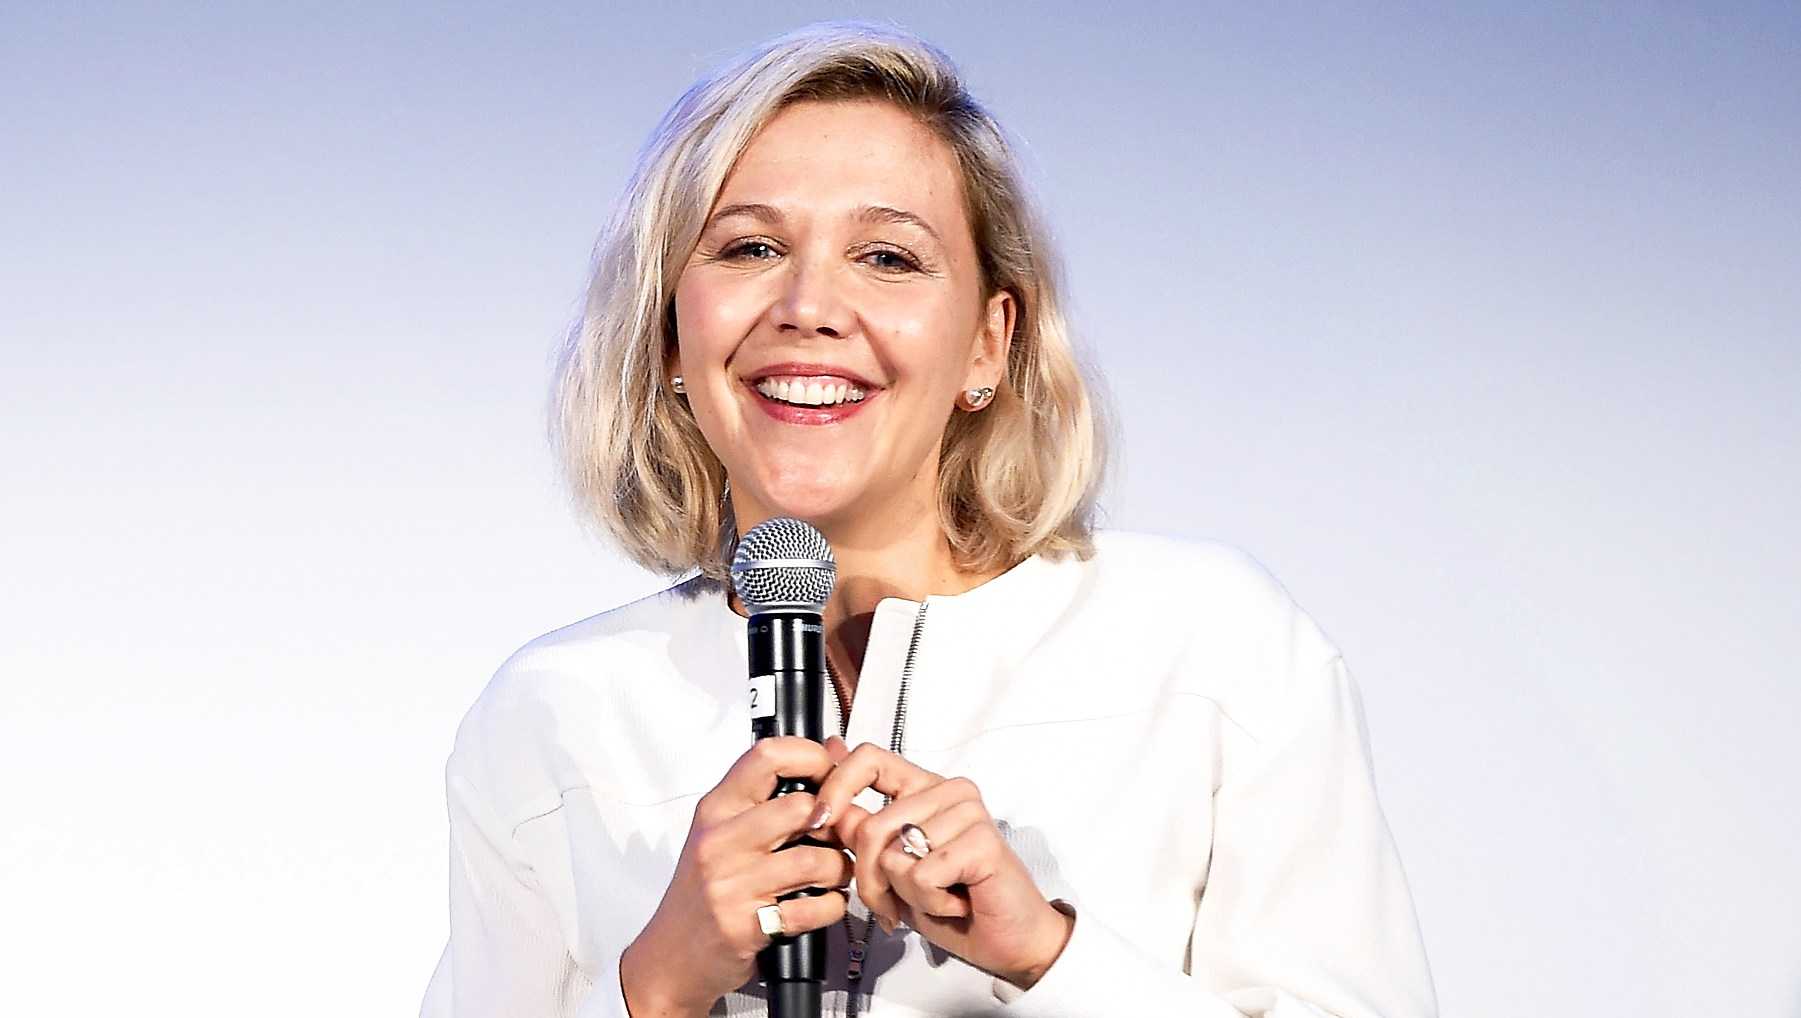 Maggie Gyllenhaal speaks onstage at Vulture Festival Presented By AT&T at Milk Studios on May 19, 2018 in New York City.